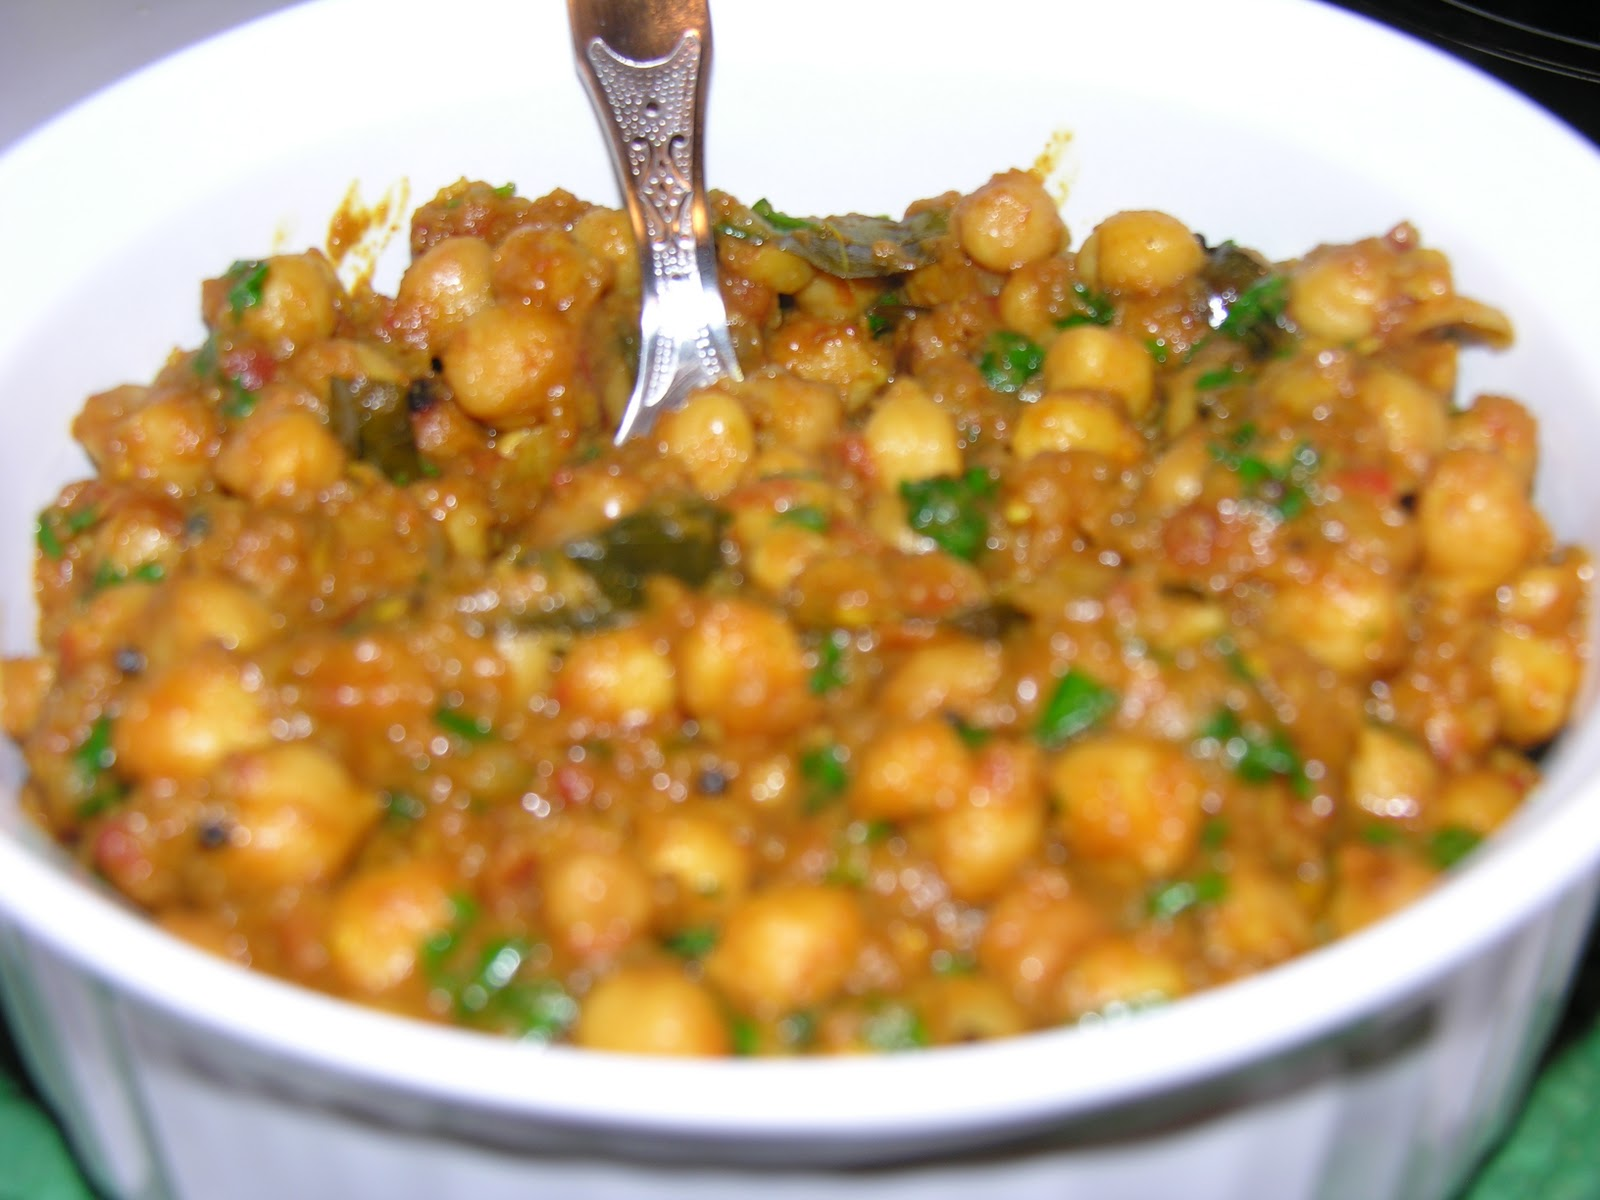 ShaRach cooking: Chana Masala